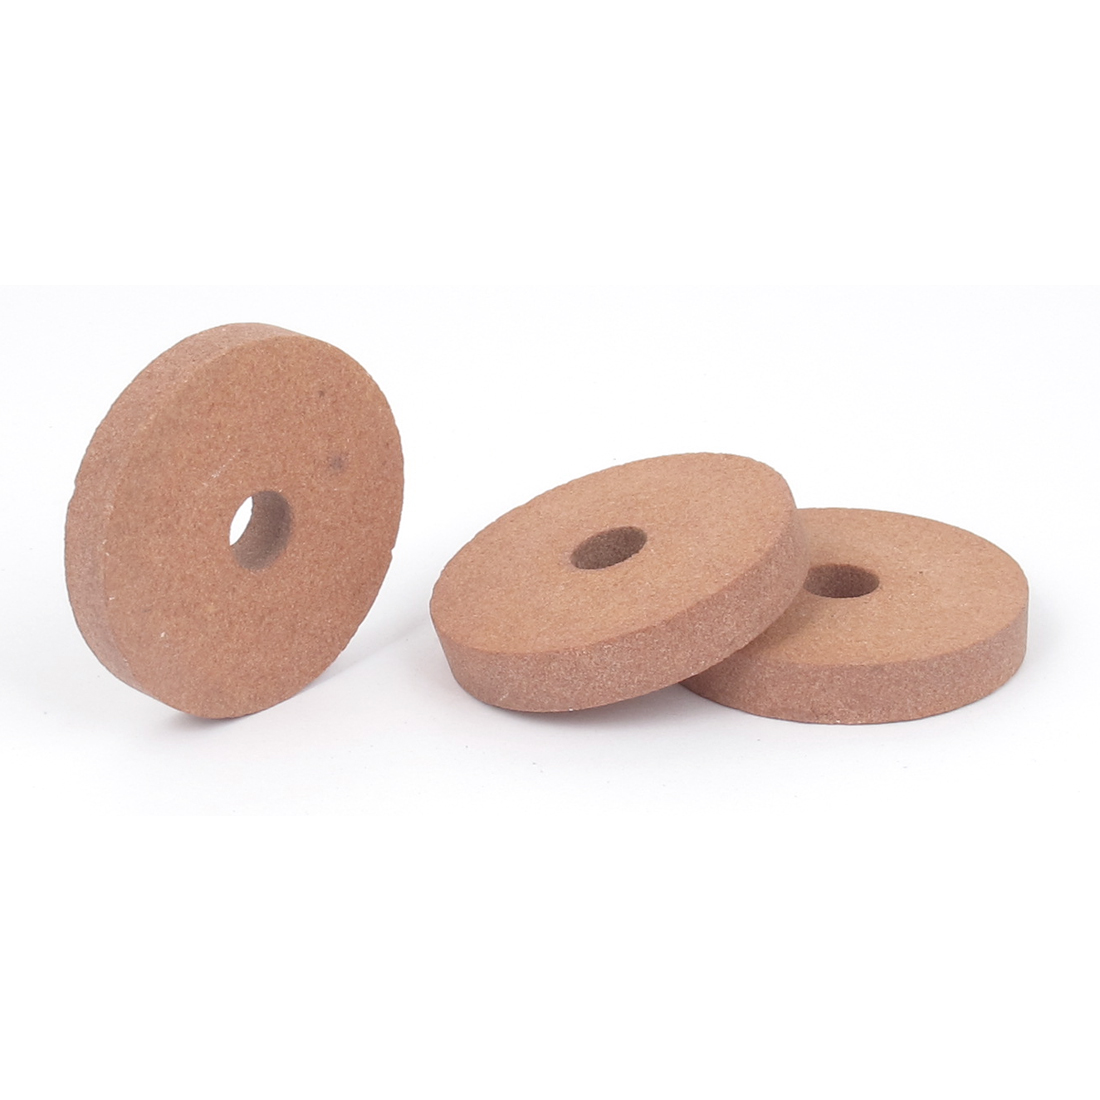 Carborundum Abrasives Round Grinding Wheel Brick Red 50 x 8 x 10mm 3 Pcs